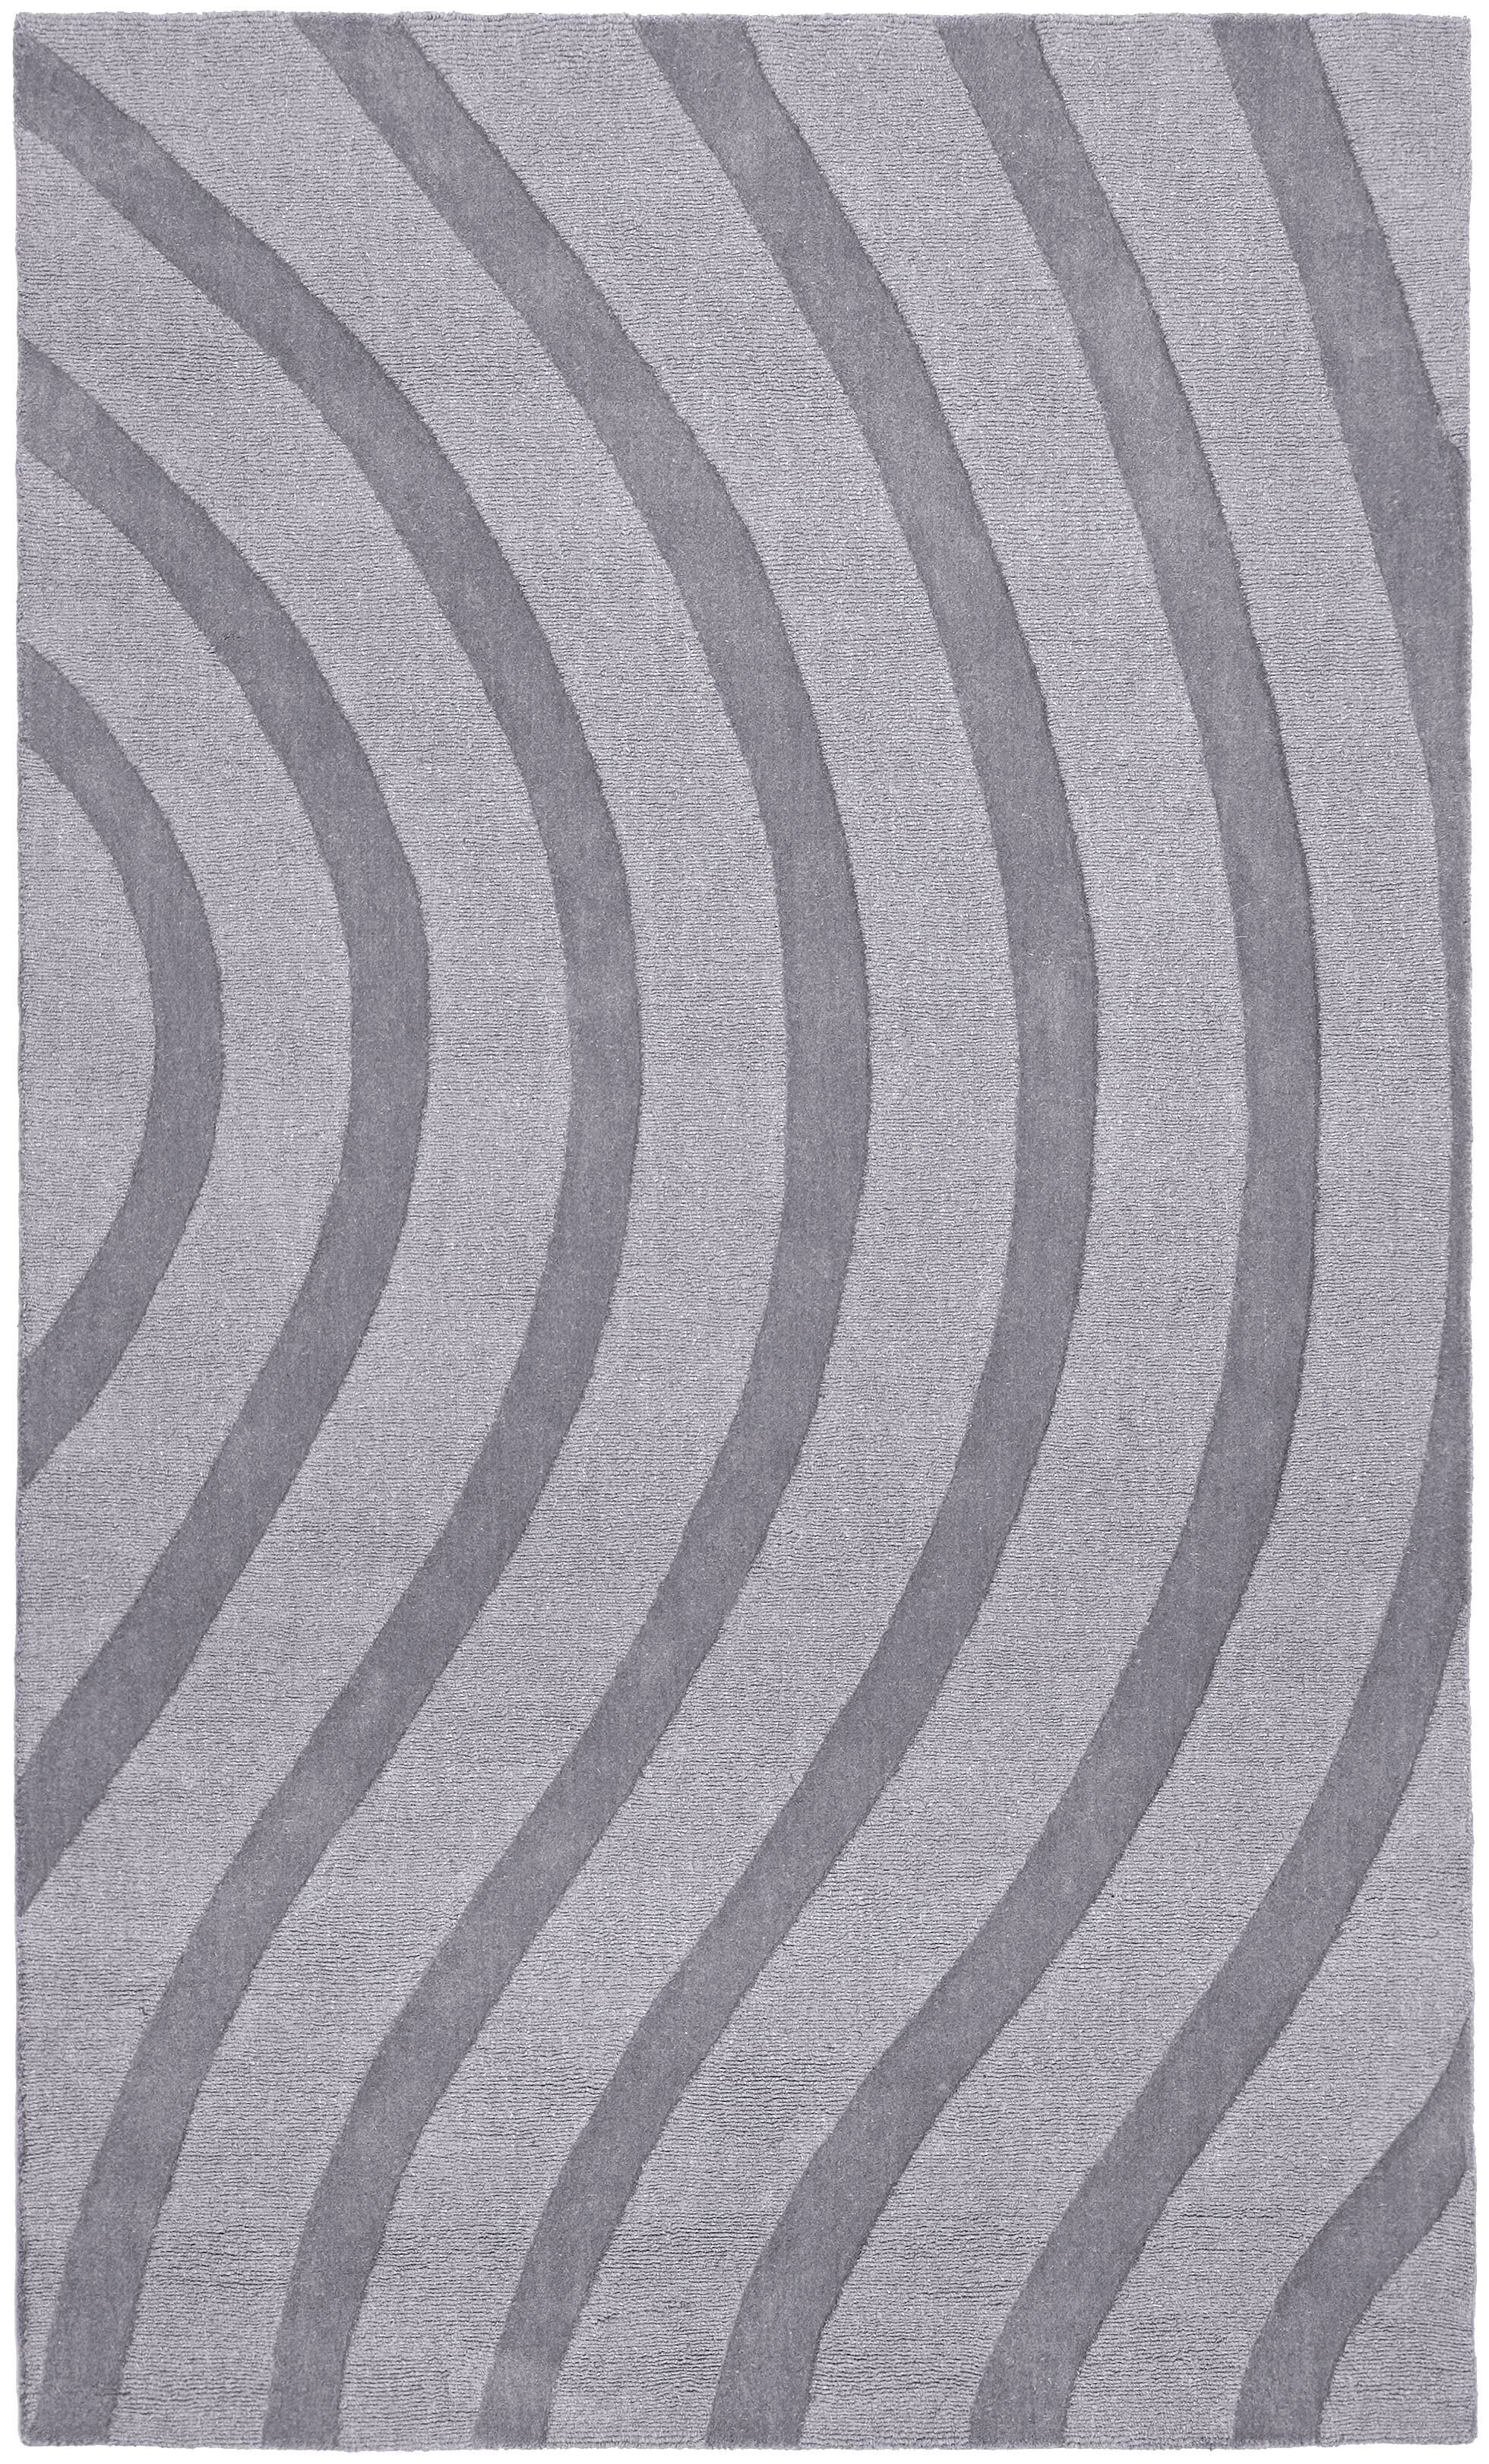 Transitions Light Gray Waves Rug Rug Size: Rectangle 5' x 8'